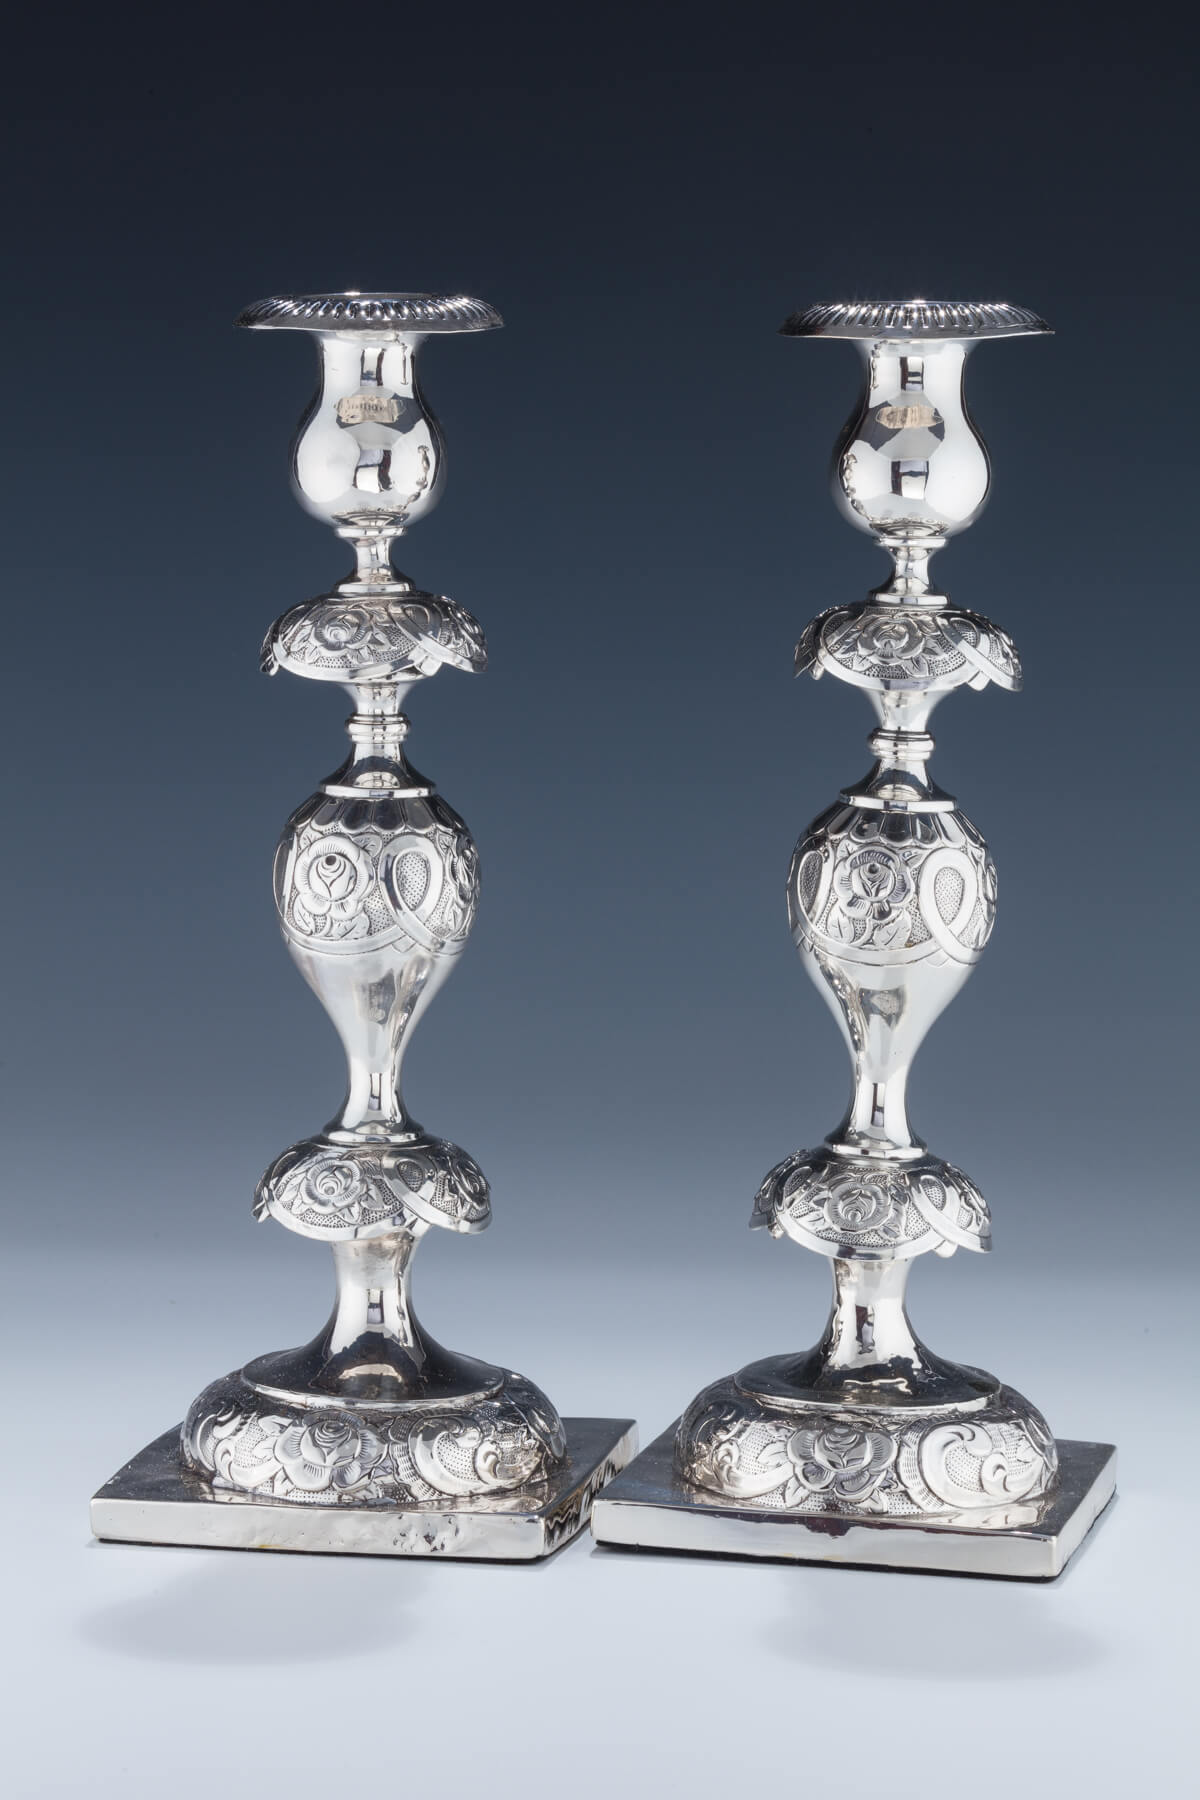 066. A Large Pair of Silver Sabbath Candlesticks by Swinarski